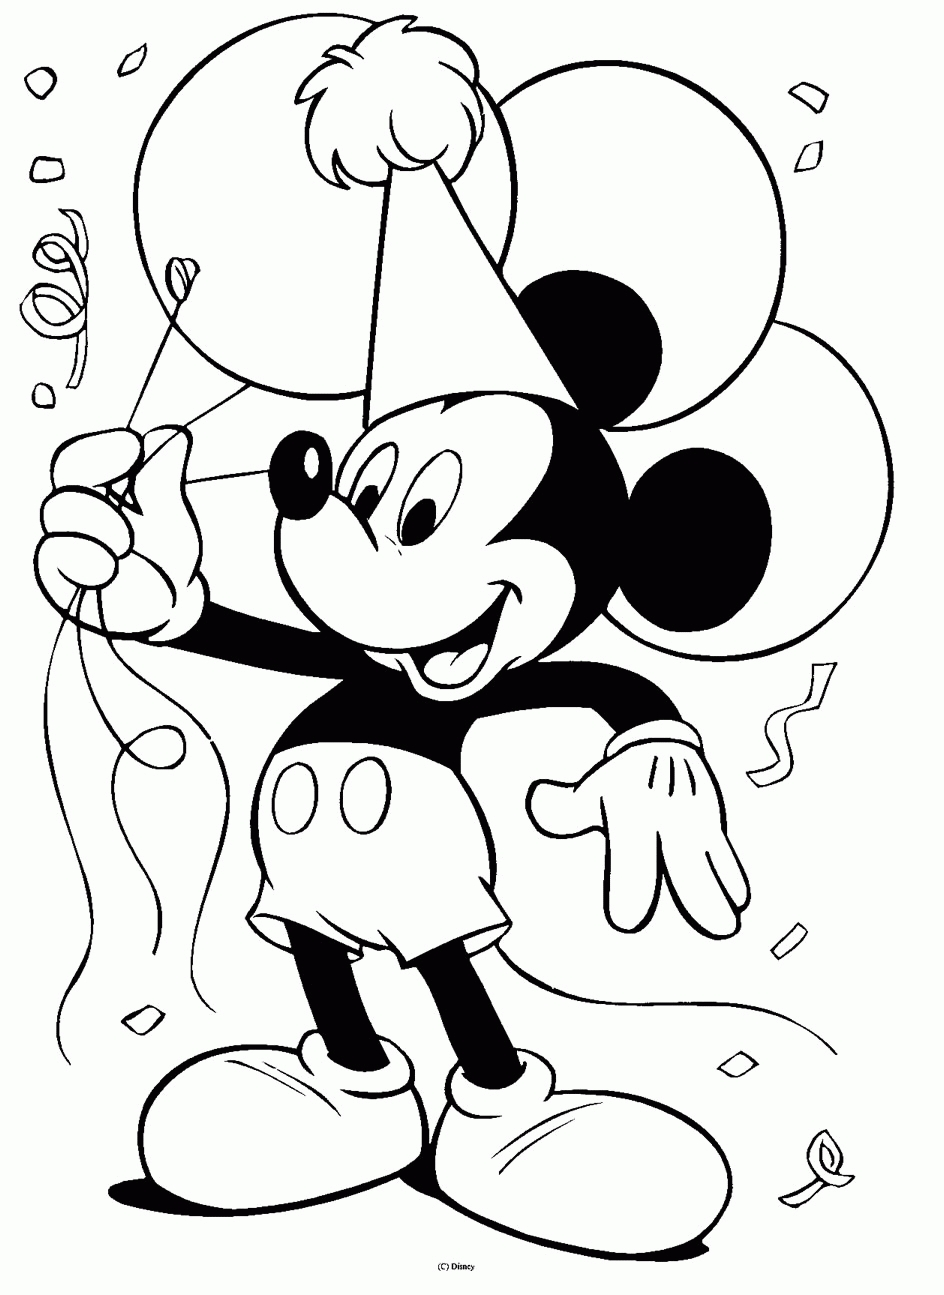 Disney Coloring Pages - Disney Coloring Pages